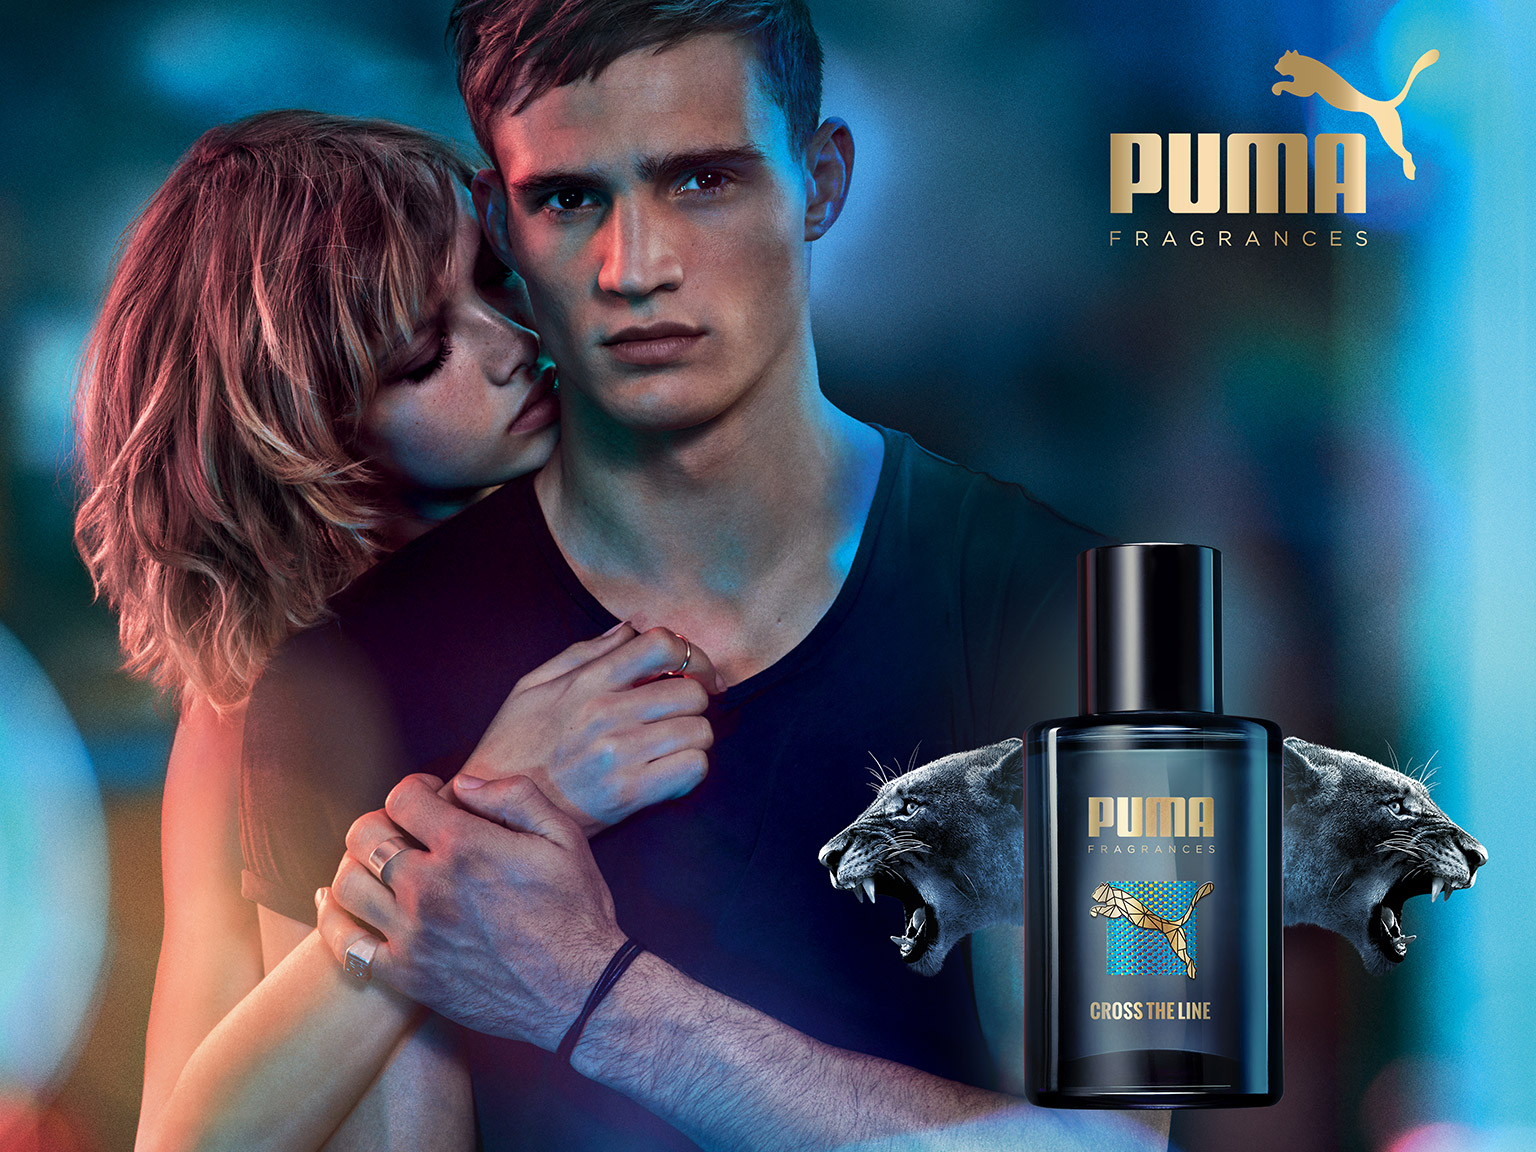 PUMA Fragrances